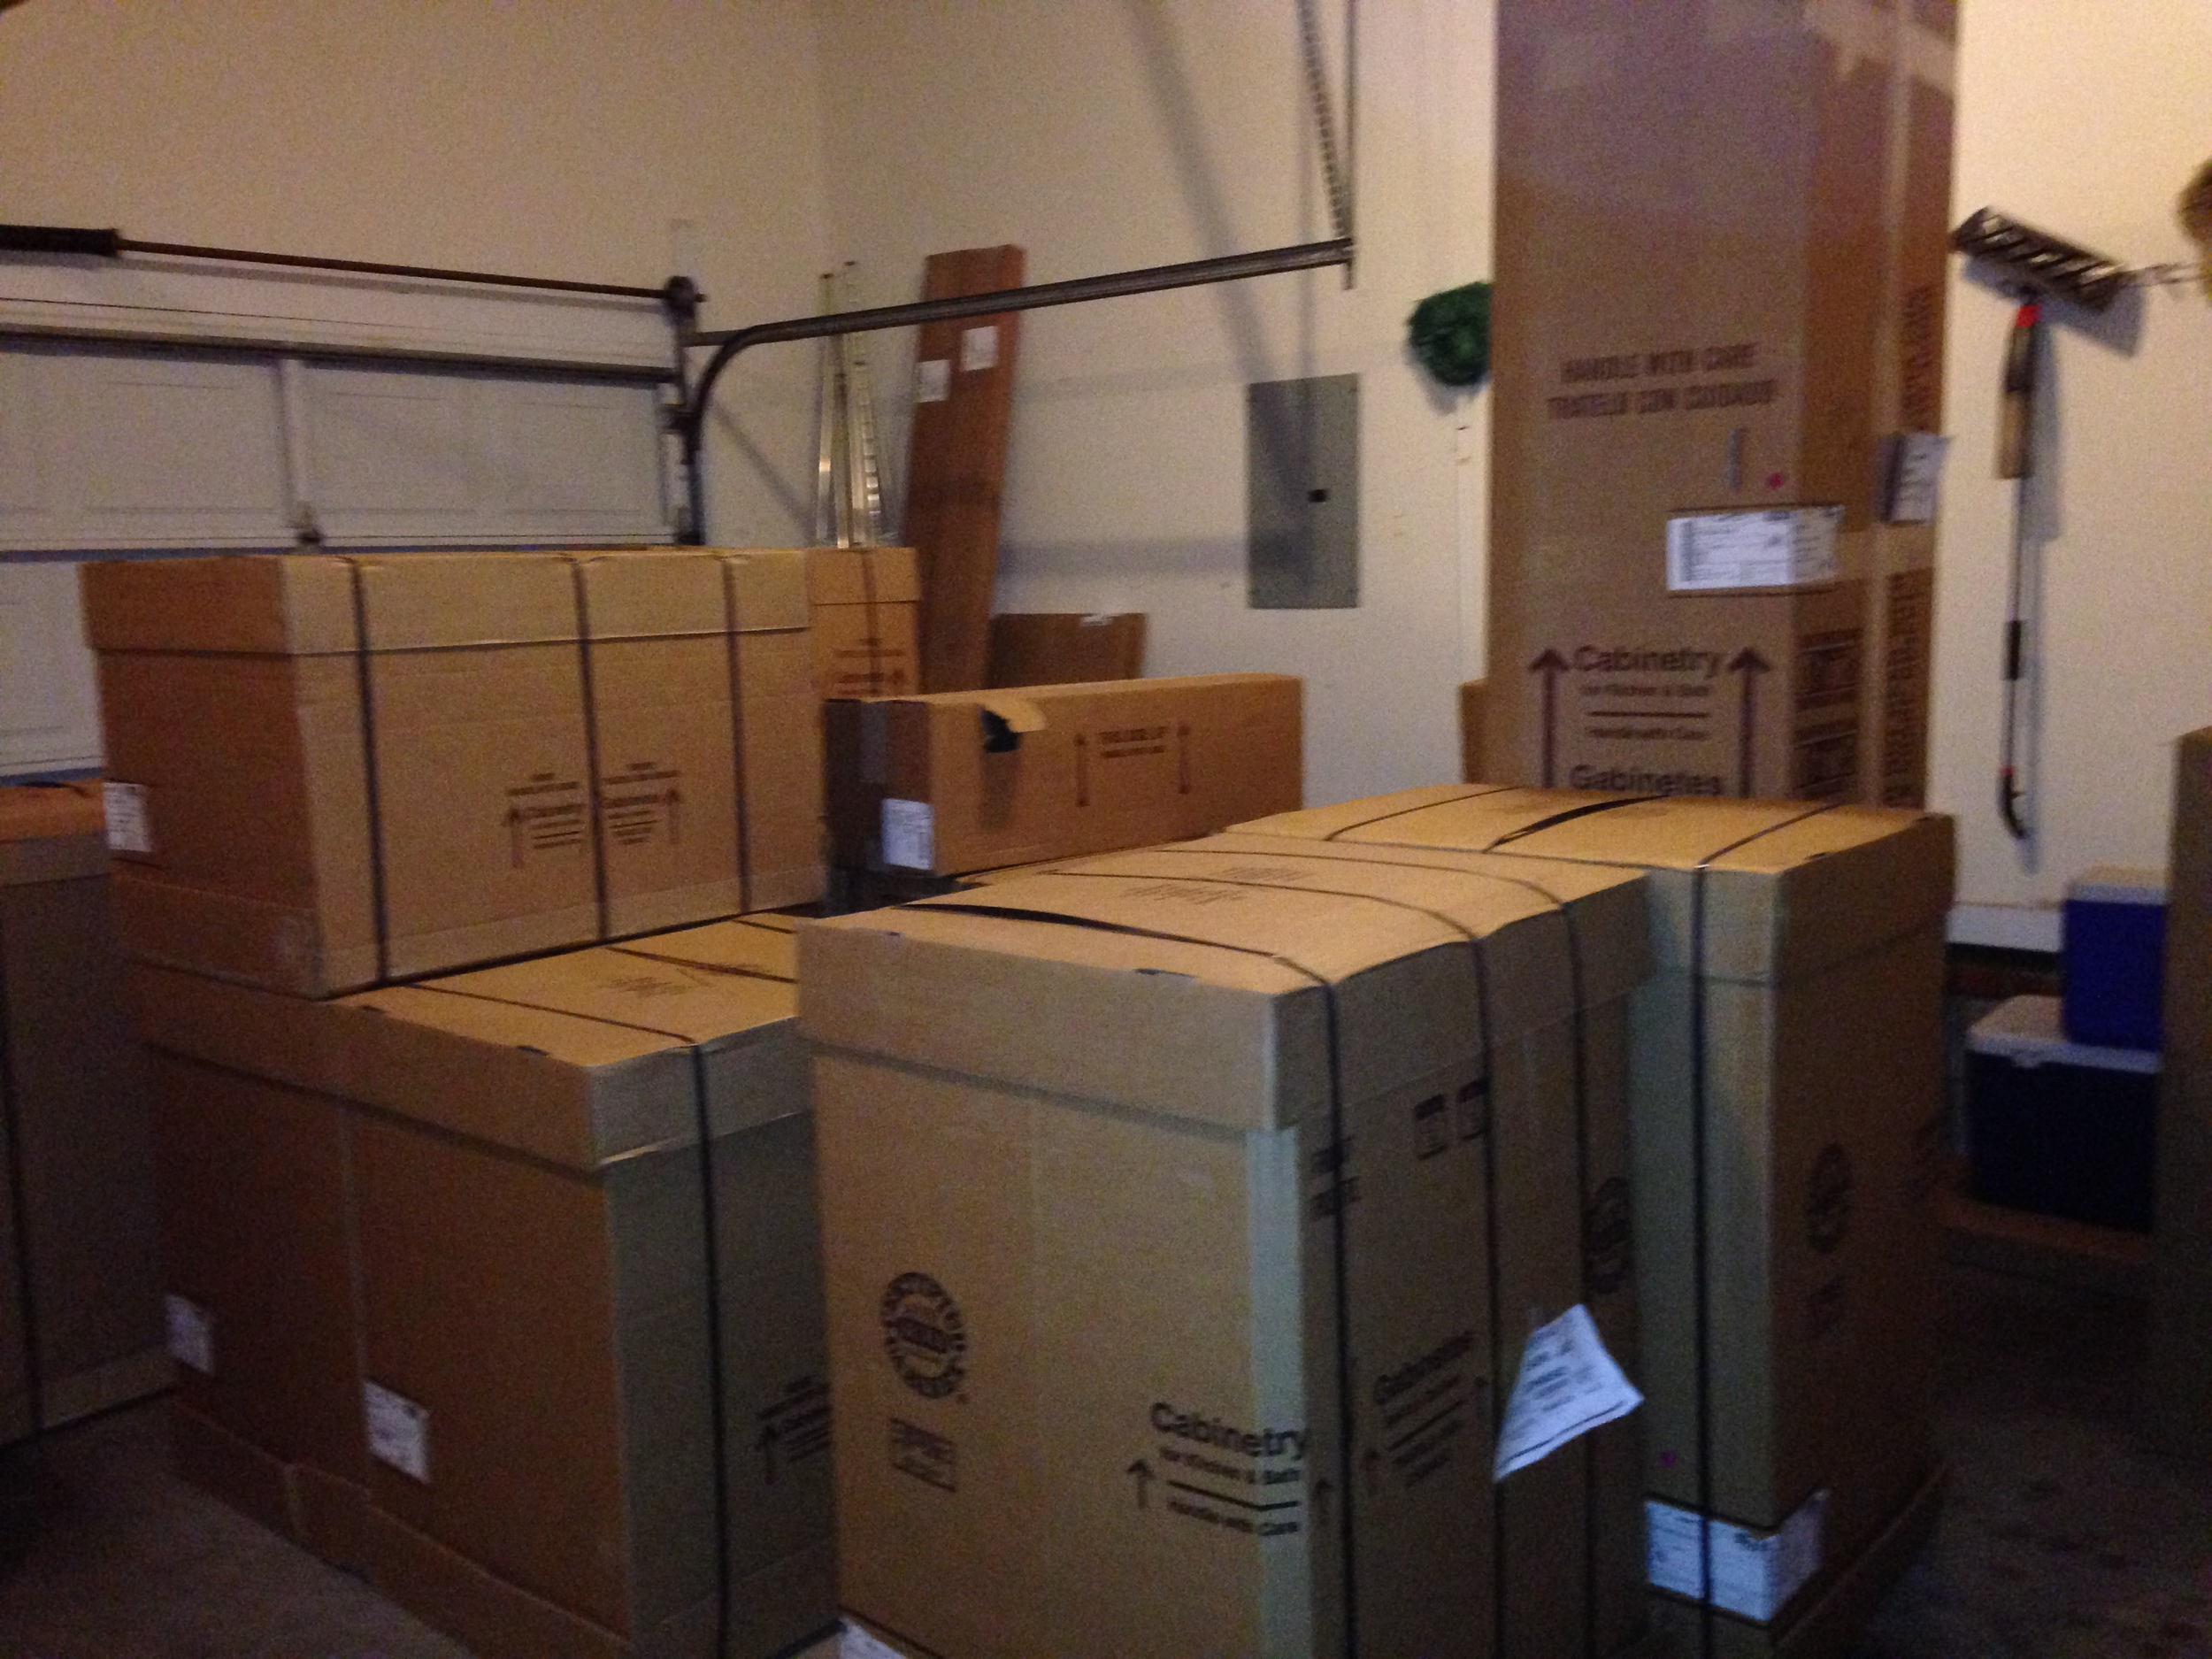 Eventually these boxes moved to the living room.  They were there for five days.